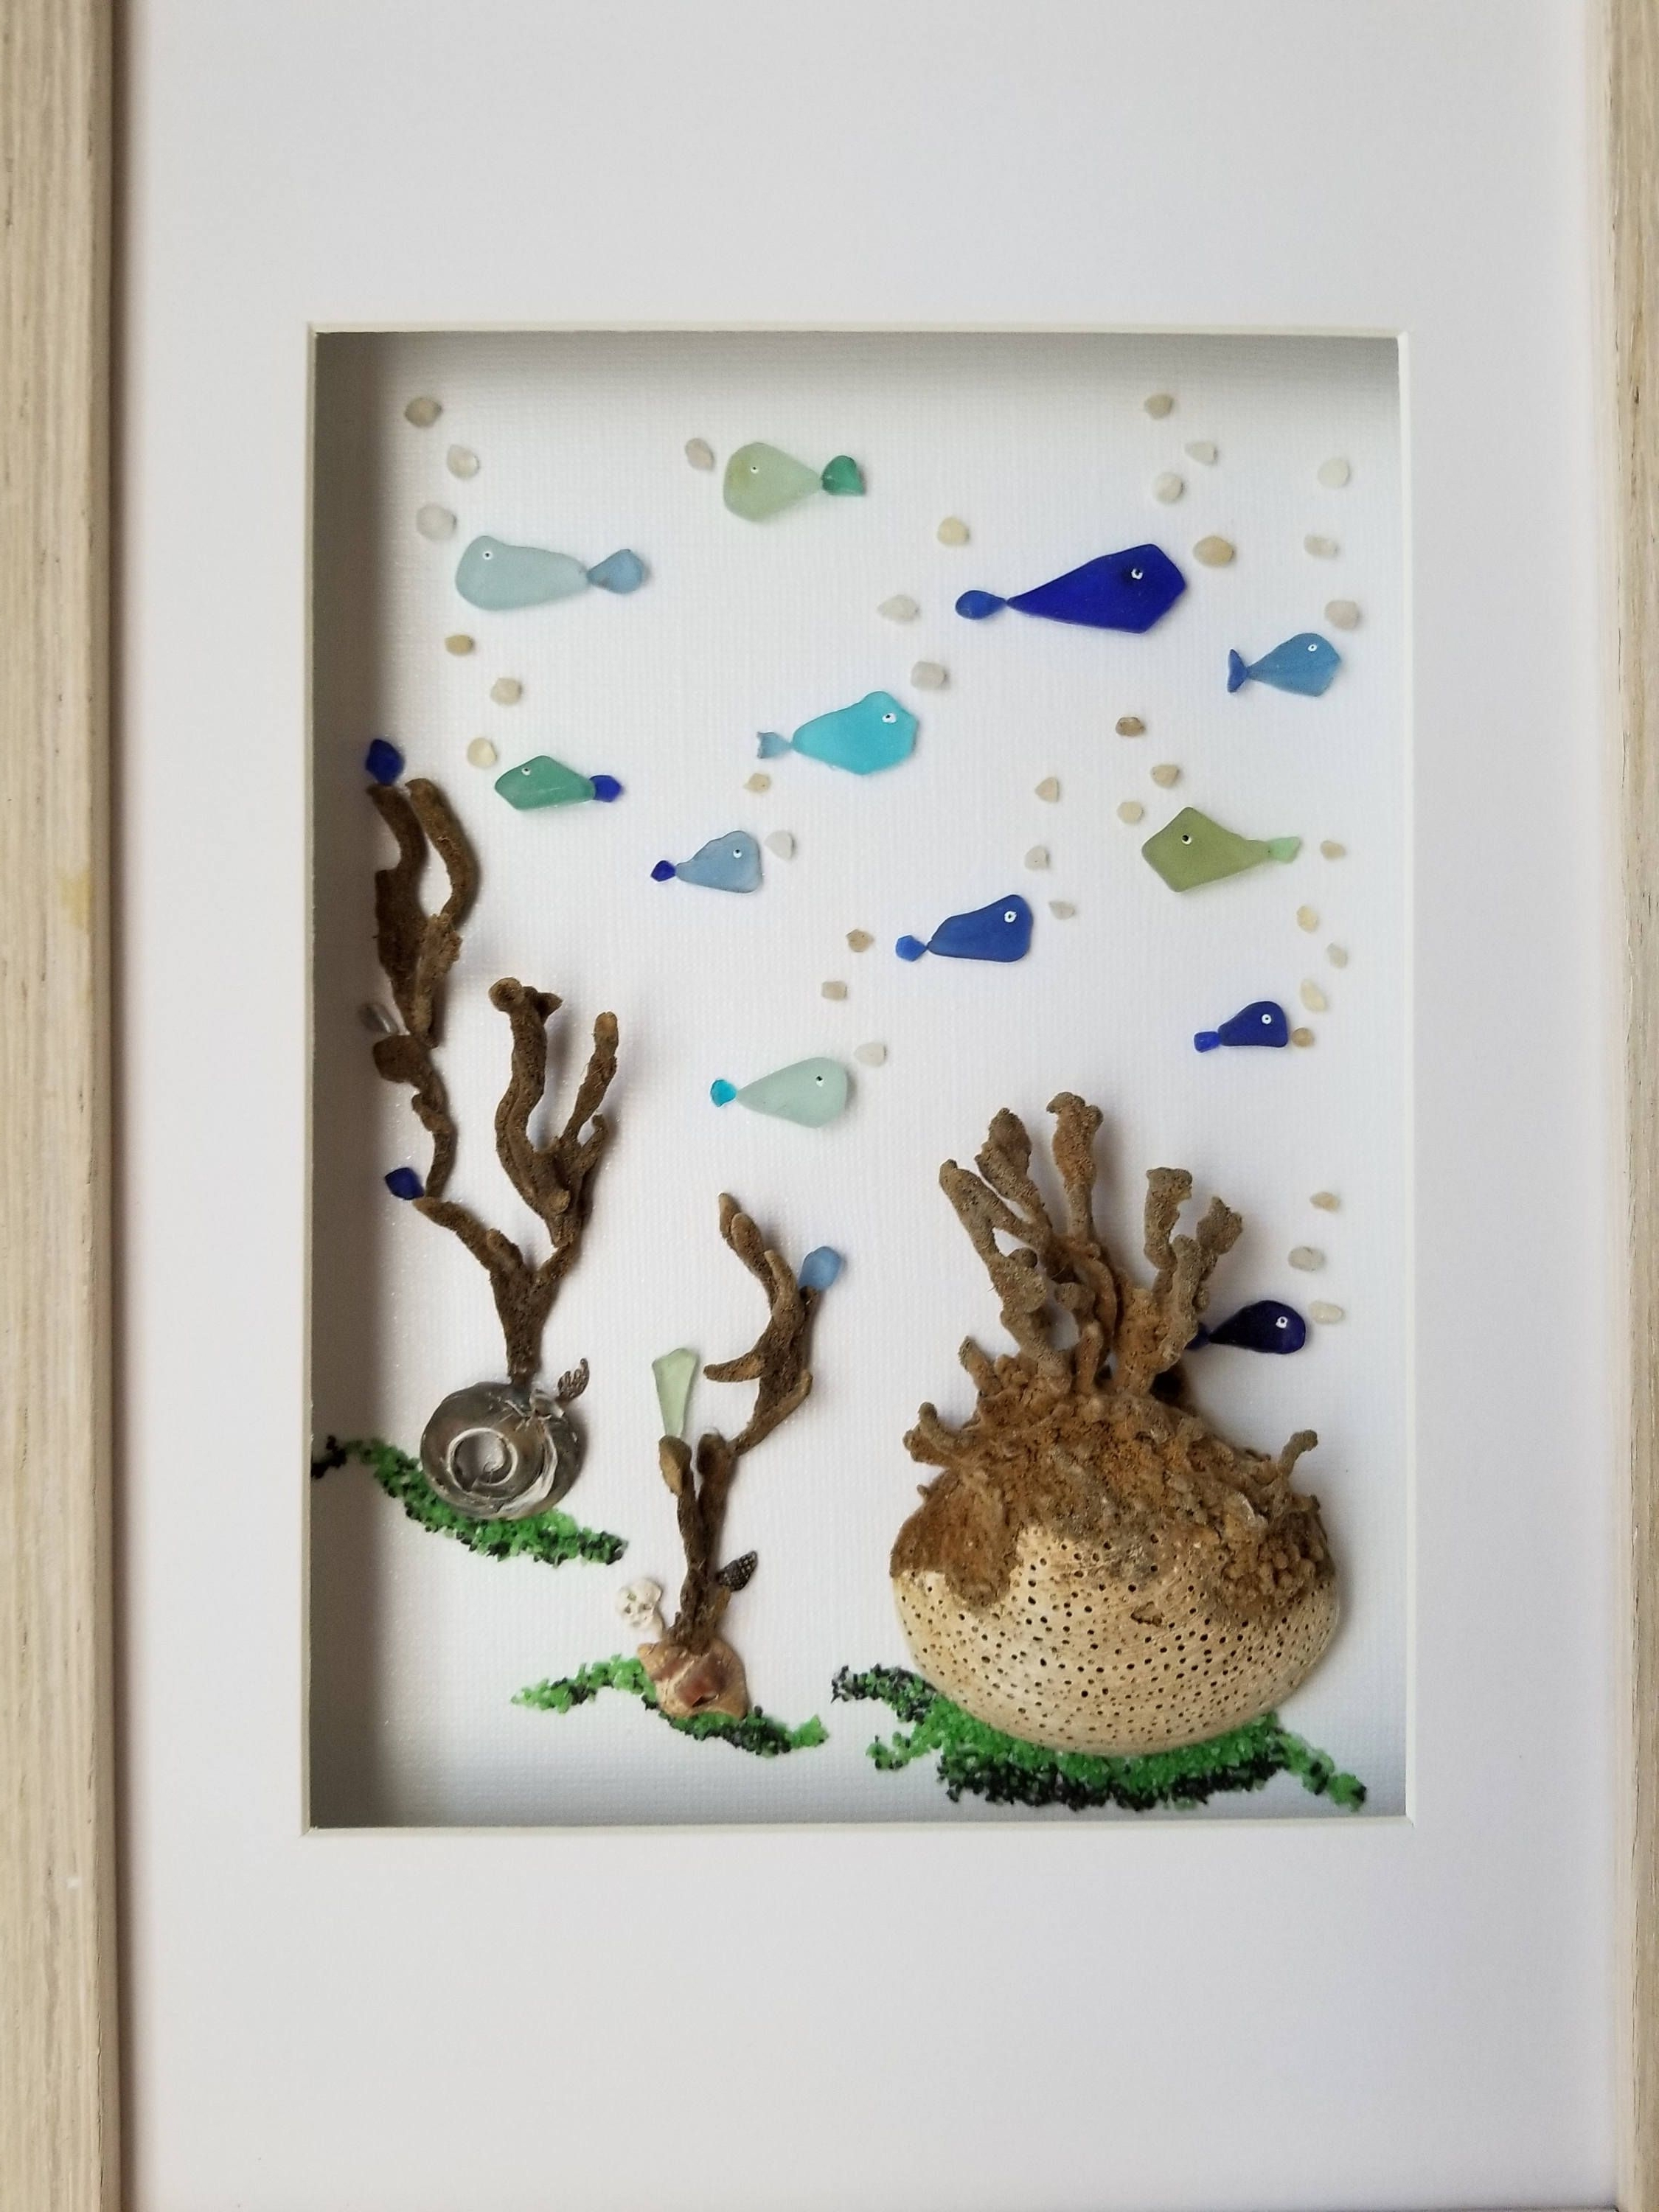 Newest Sea Glass Art, Framed Sea Glass Bathroom Wall Decor, Costal Decor Inside Sea Glass Wall Art (View 10 of 15)